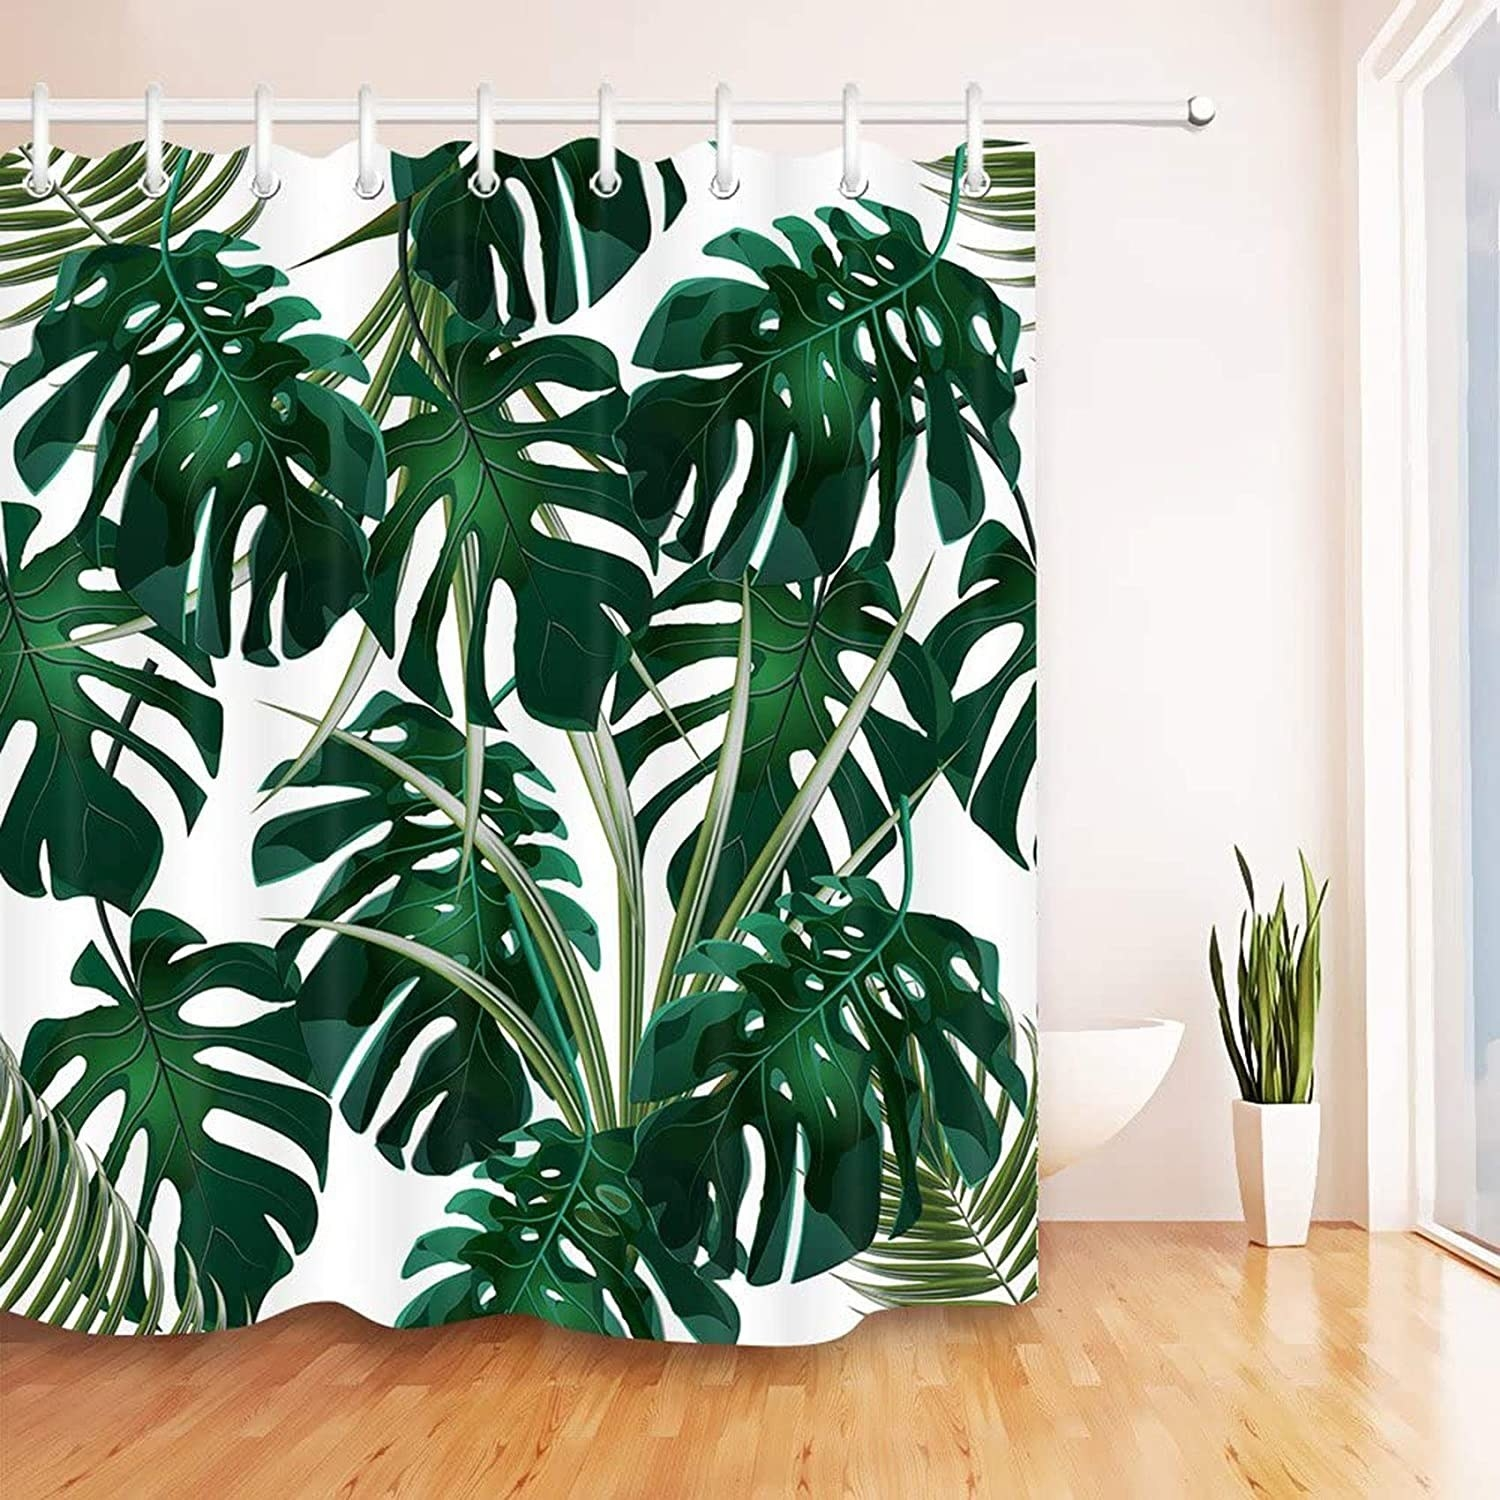 A shower curtain with big tropical leaves printed onto it